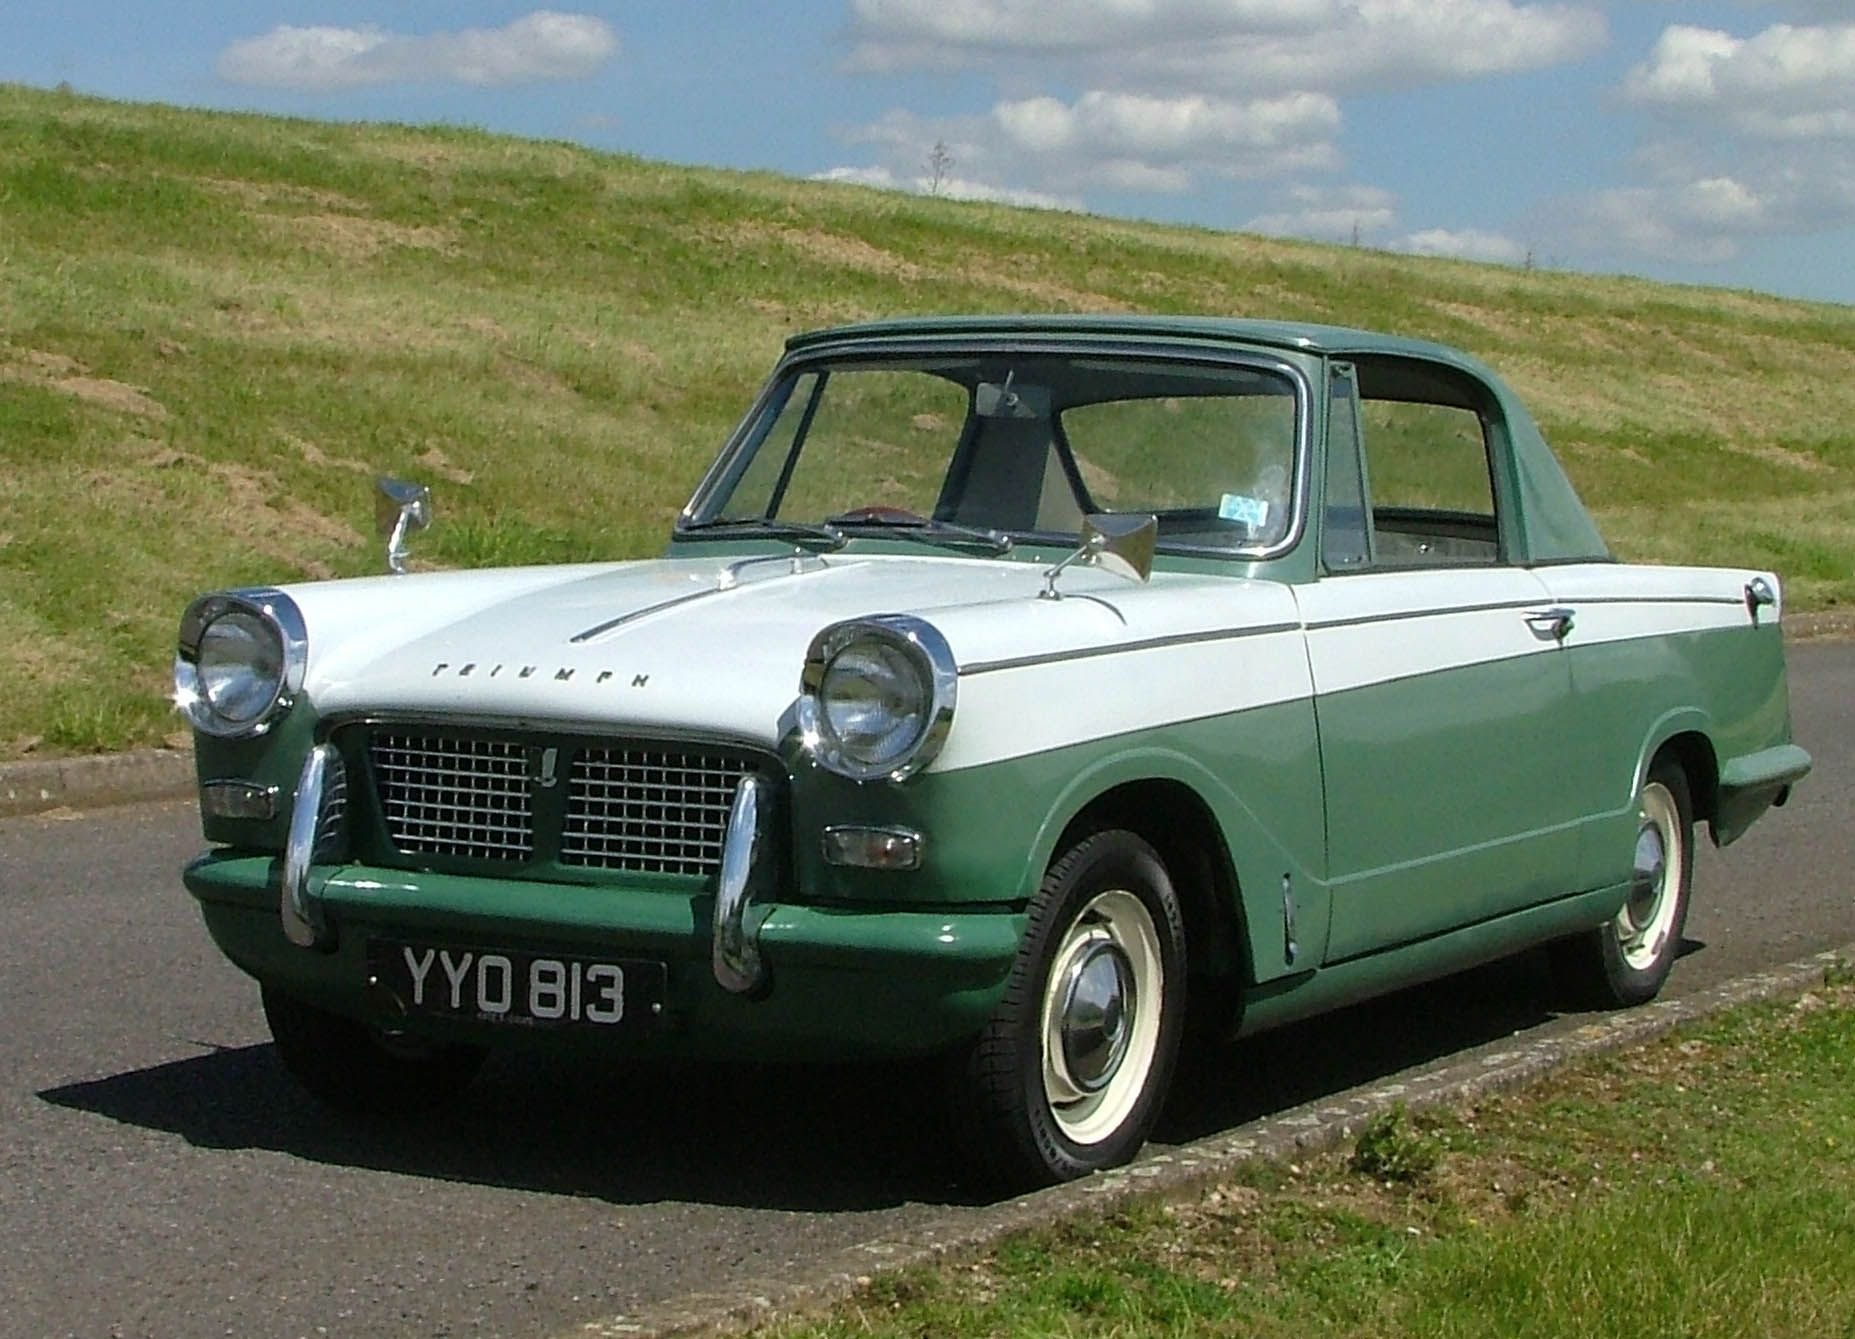 1960 Triumph Herald Coupe British cars, Retro cars